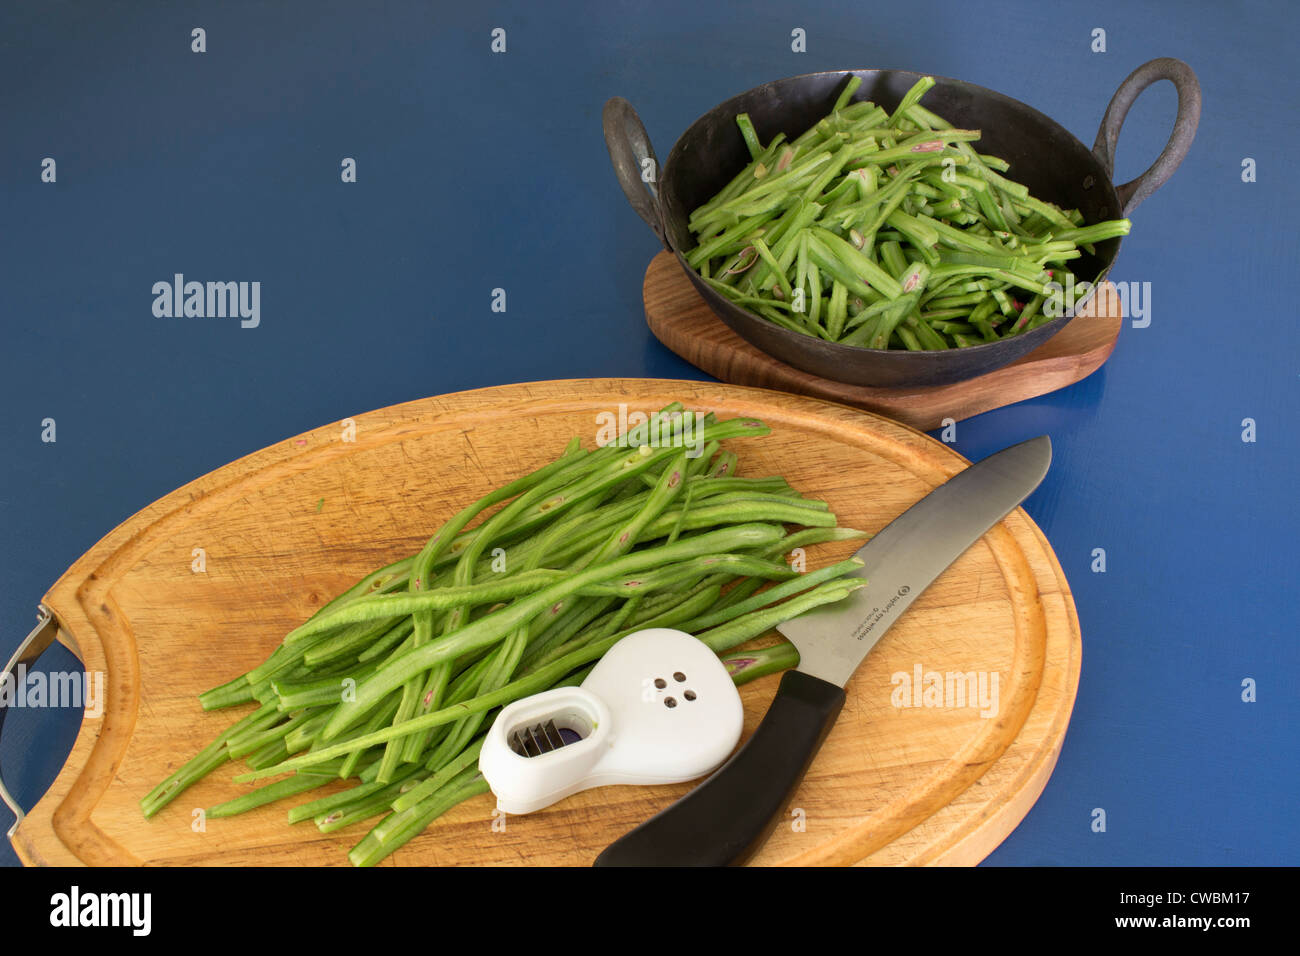 Runner Beans Fresh From The Garden Being Prepared For Cooking